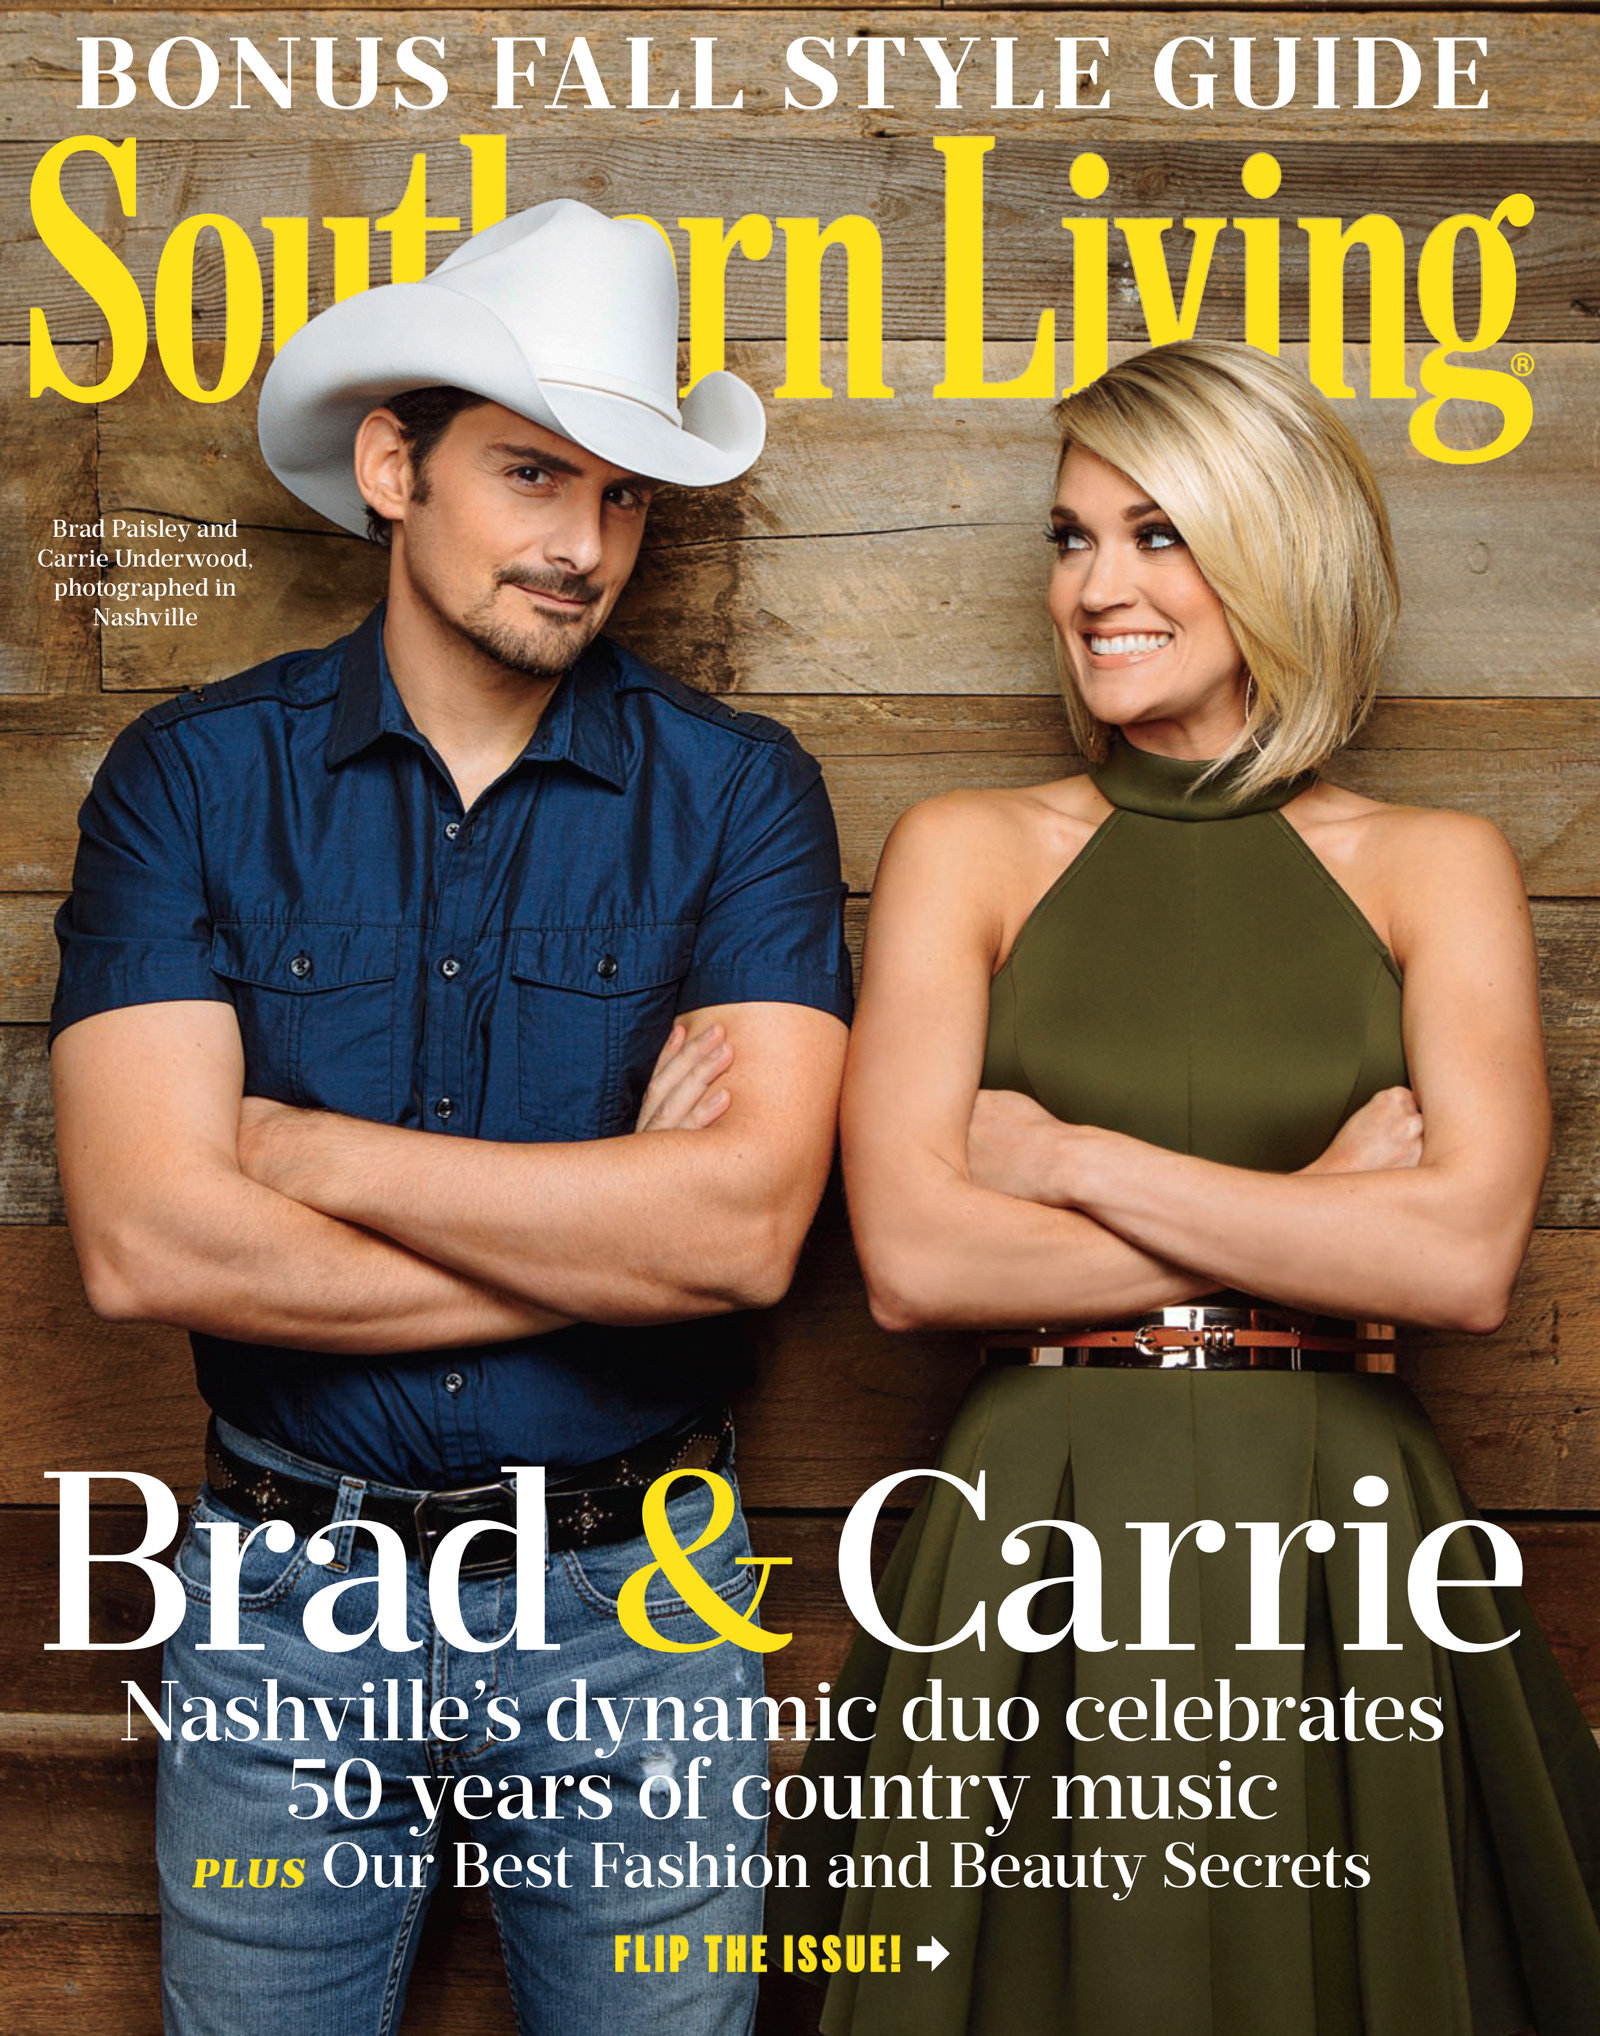 Souther Living - Brad and Carrie LEAD